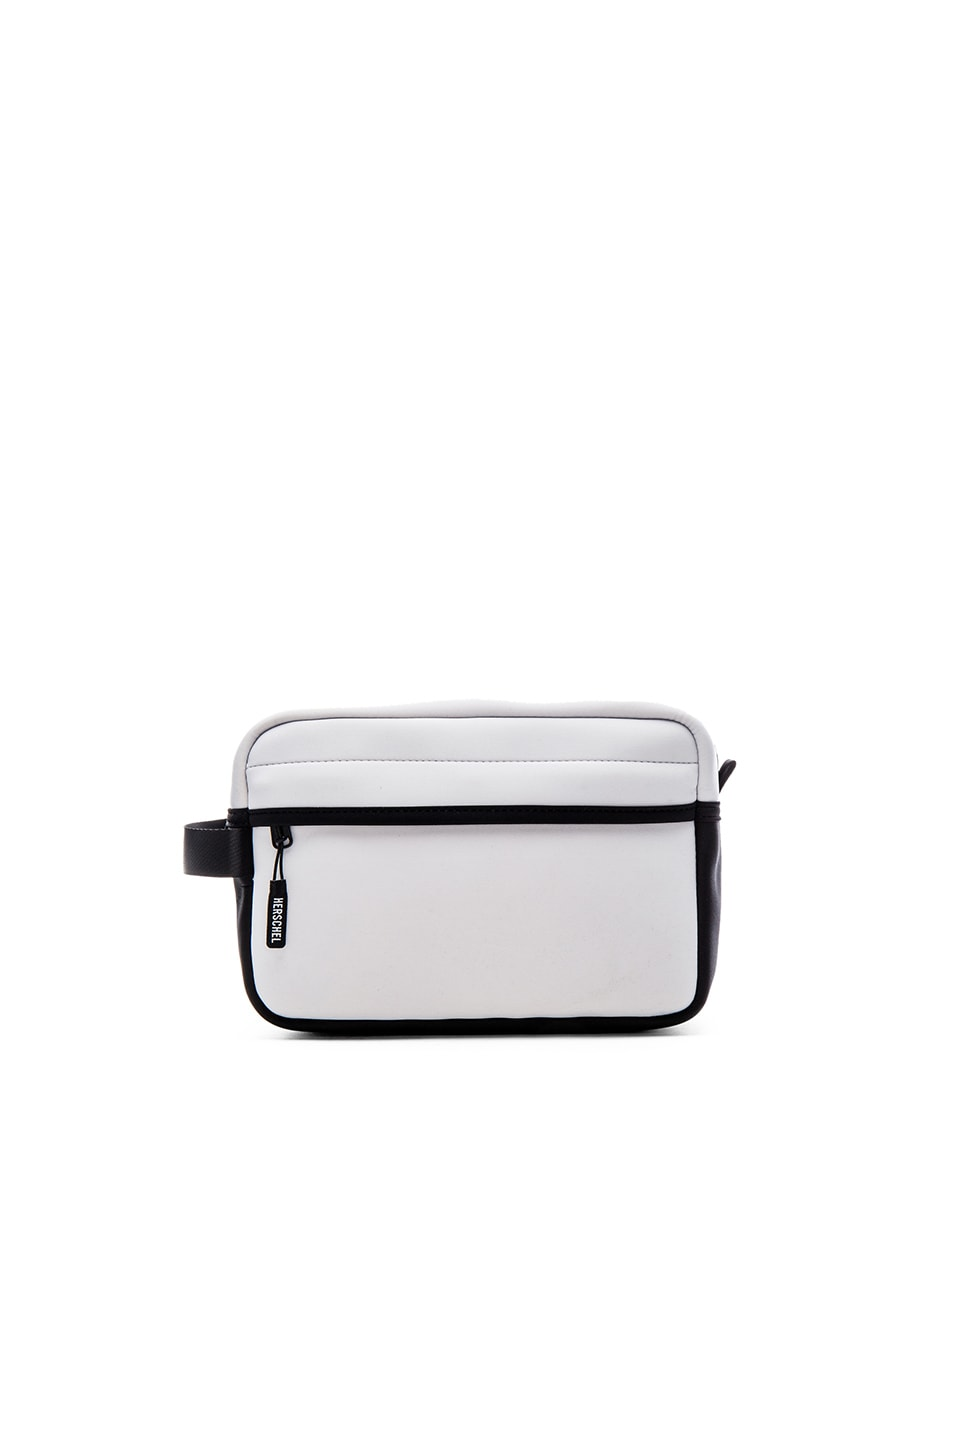 Herschel Supply Co. Chapter Travel Kit in White Neoprene